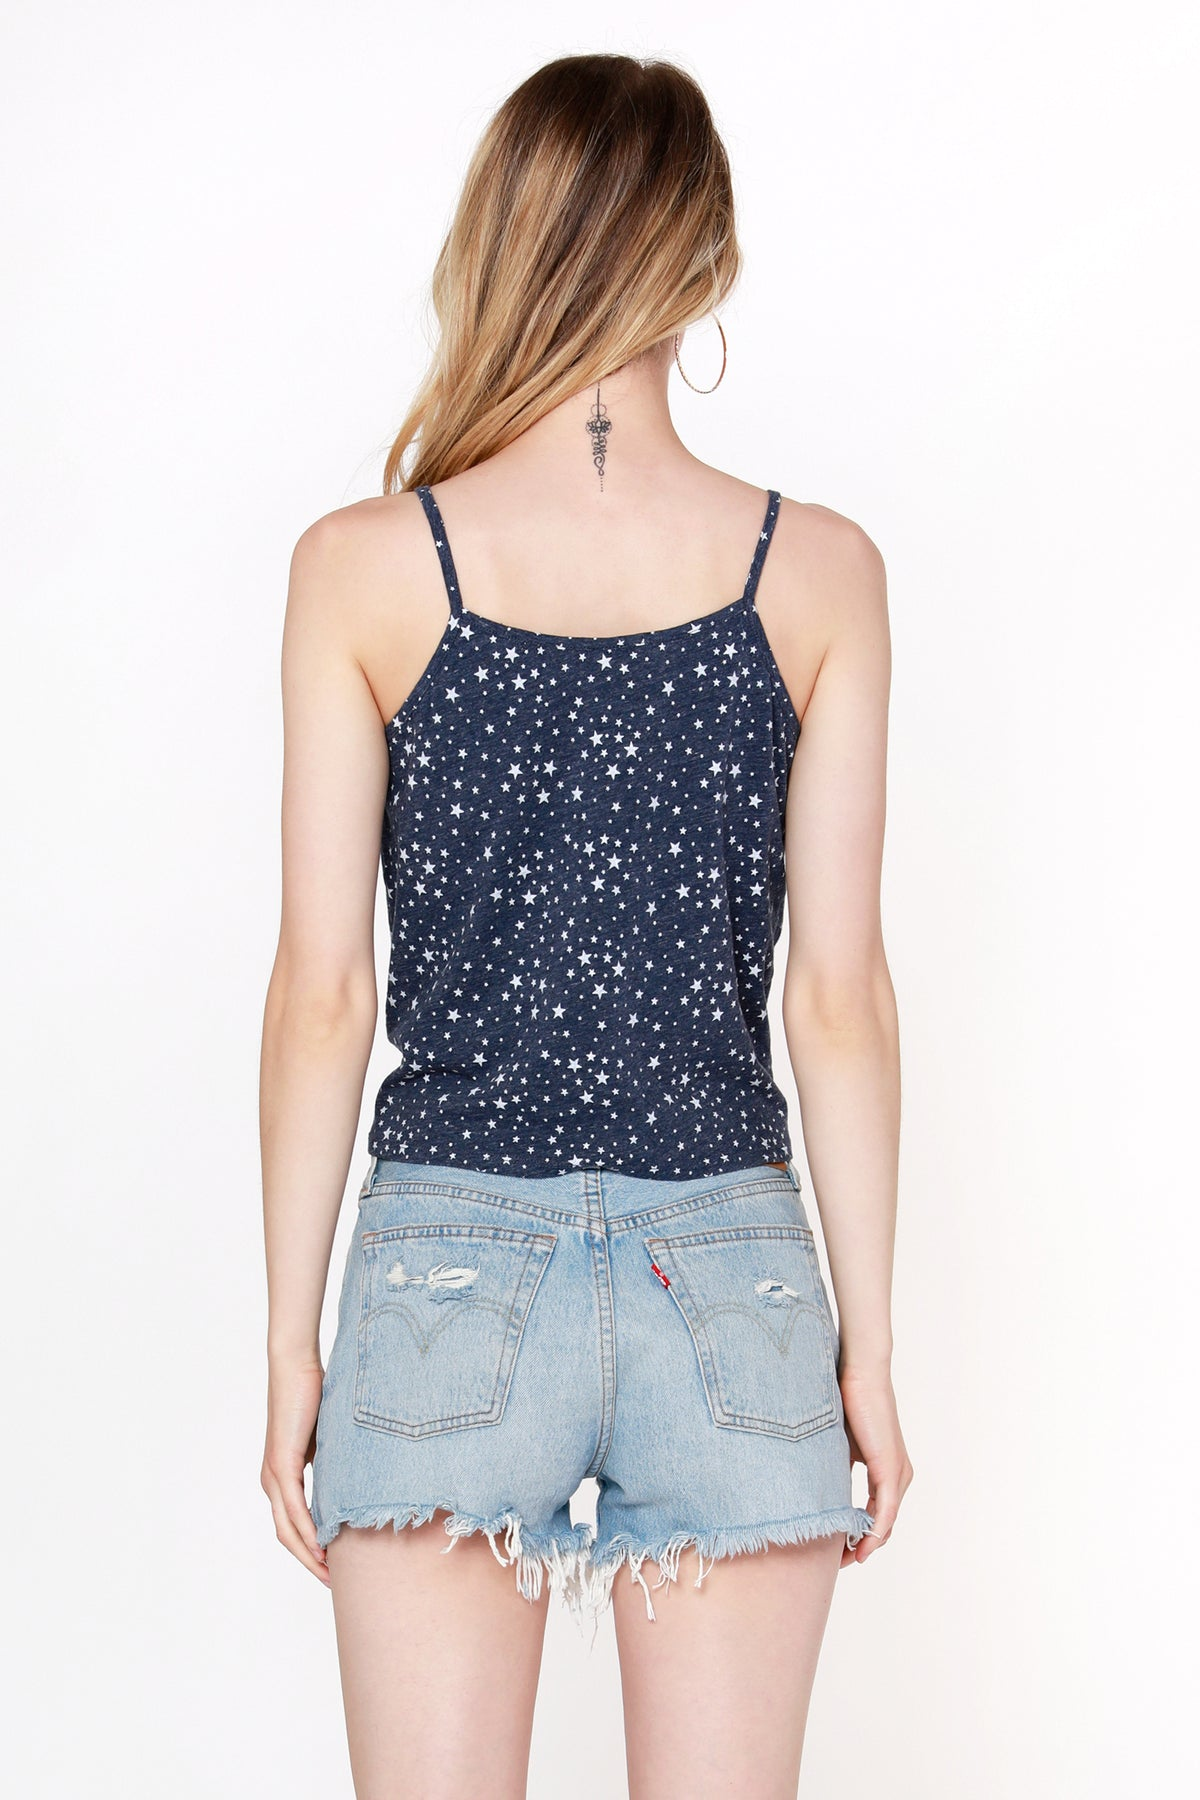 Star Spangled Cami Top